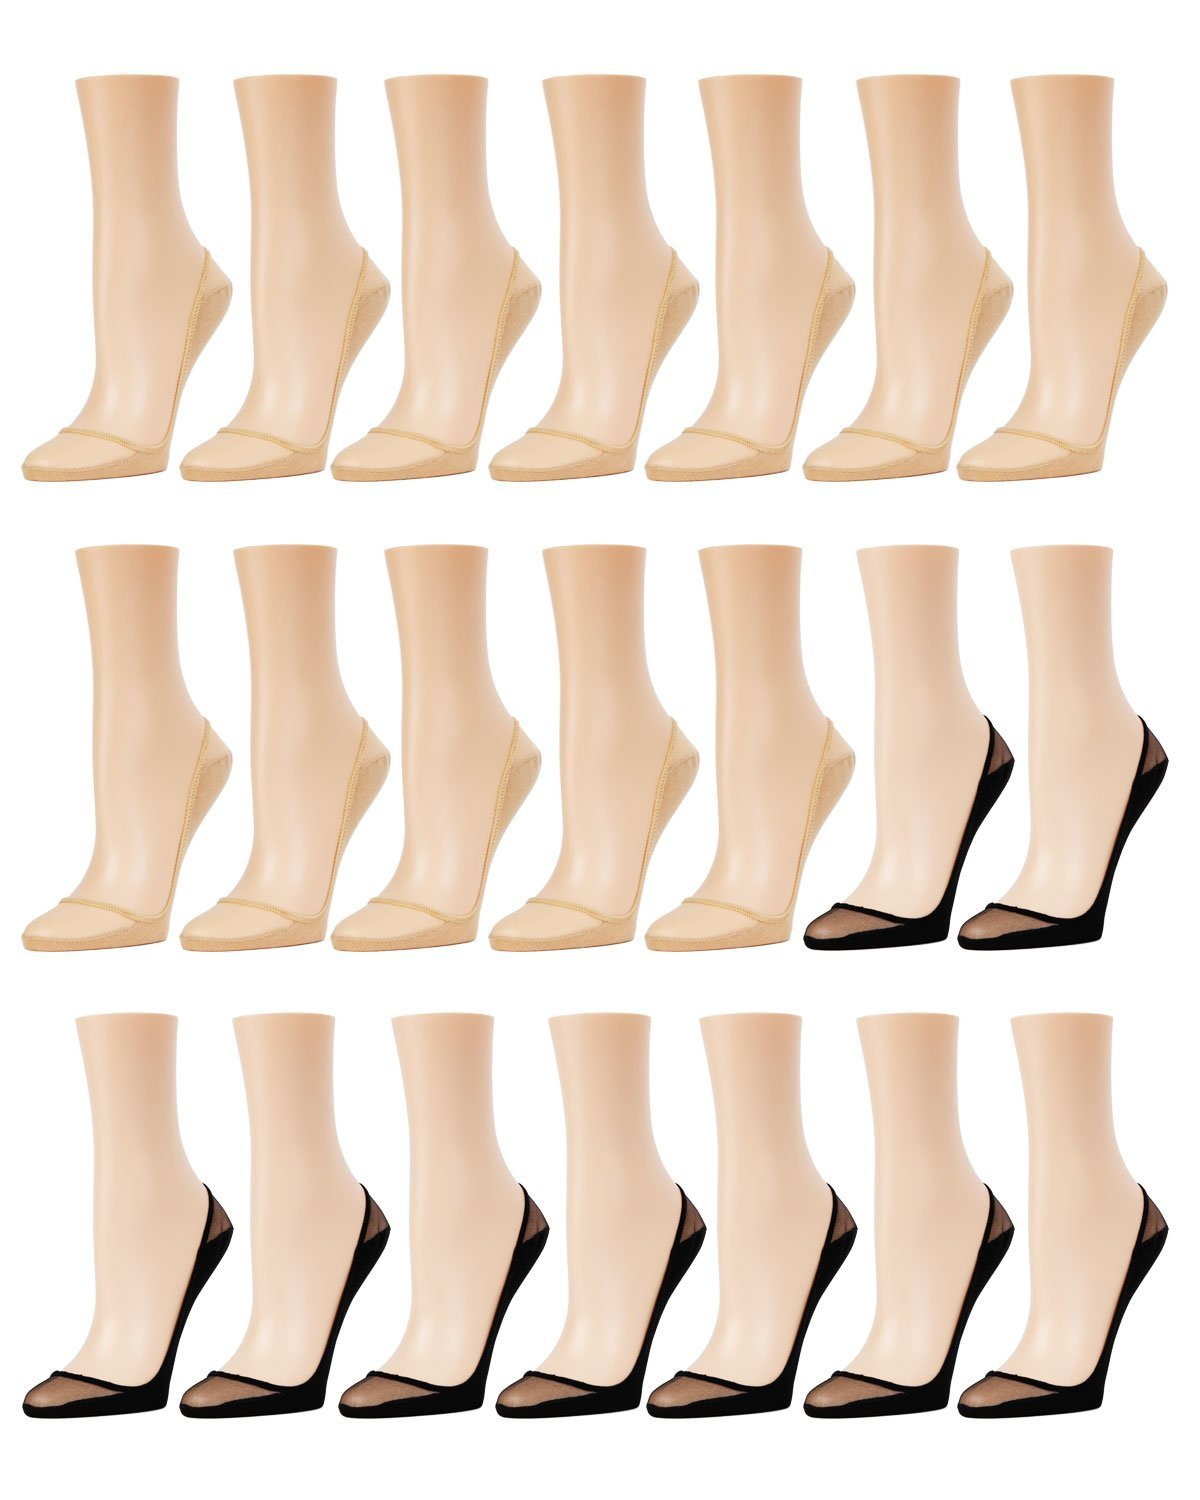 Memoi Sheer Top Cotton Sole Liner 21 pair Pack | Shoe Pads | Cotton Socks Nude/Black K03 MP054 One Size